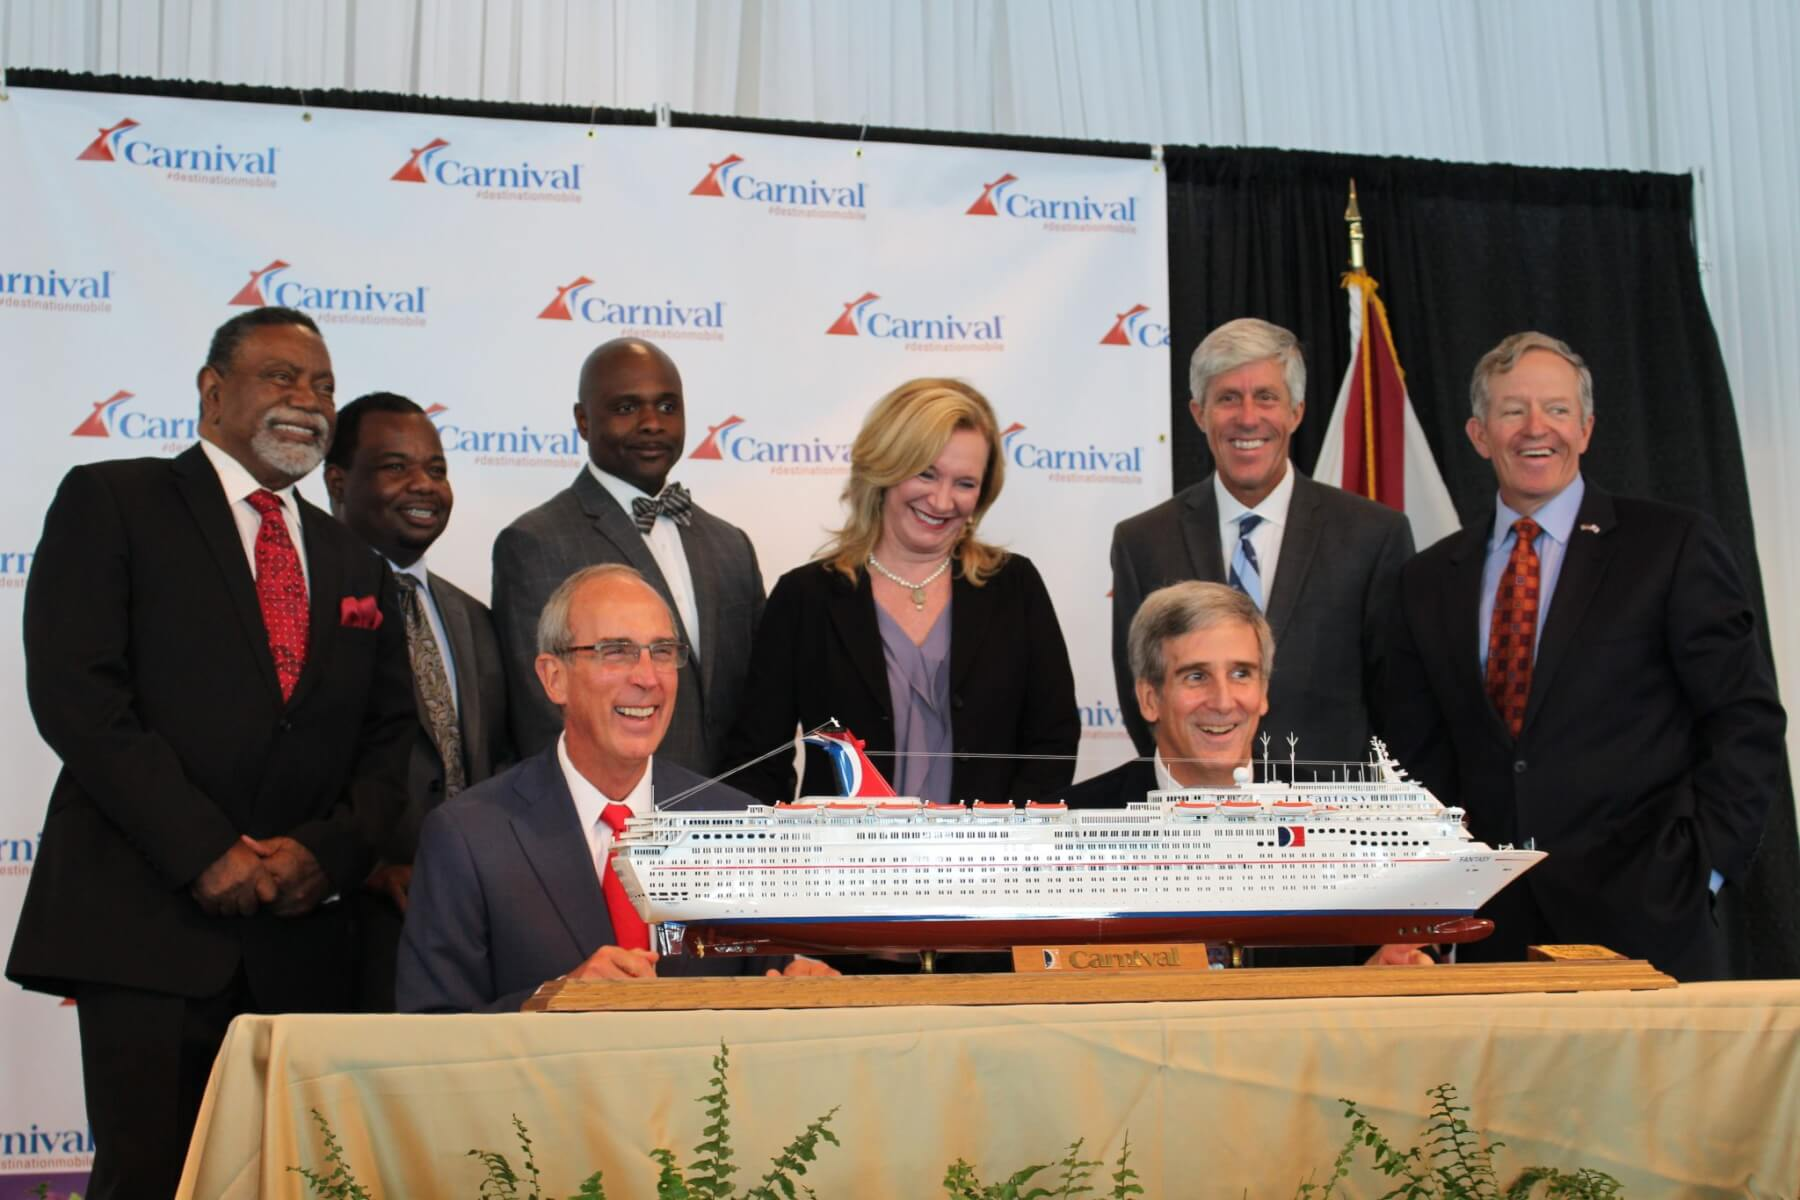 Updated: Carnival  Fantasy to sail to Mexico beginning in November 2016